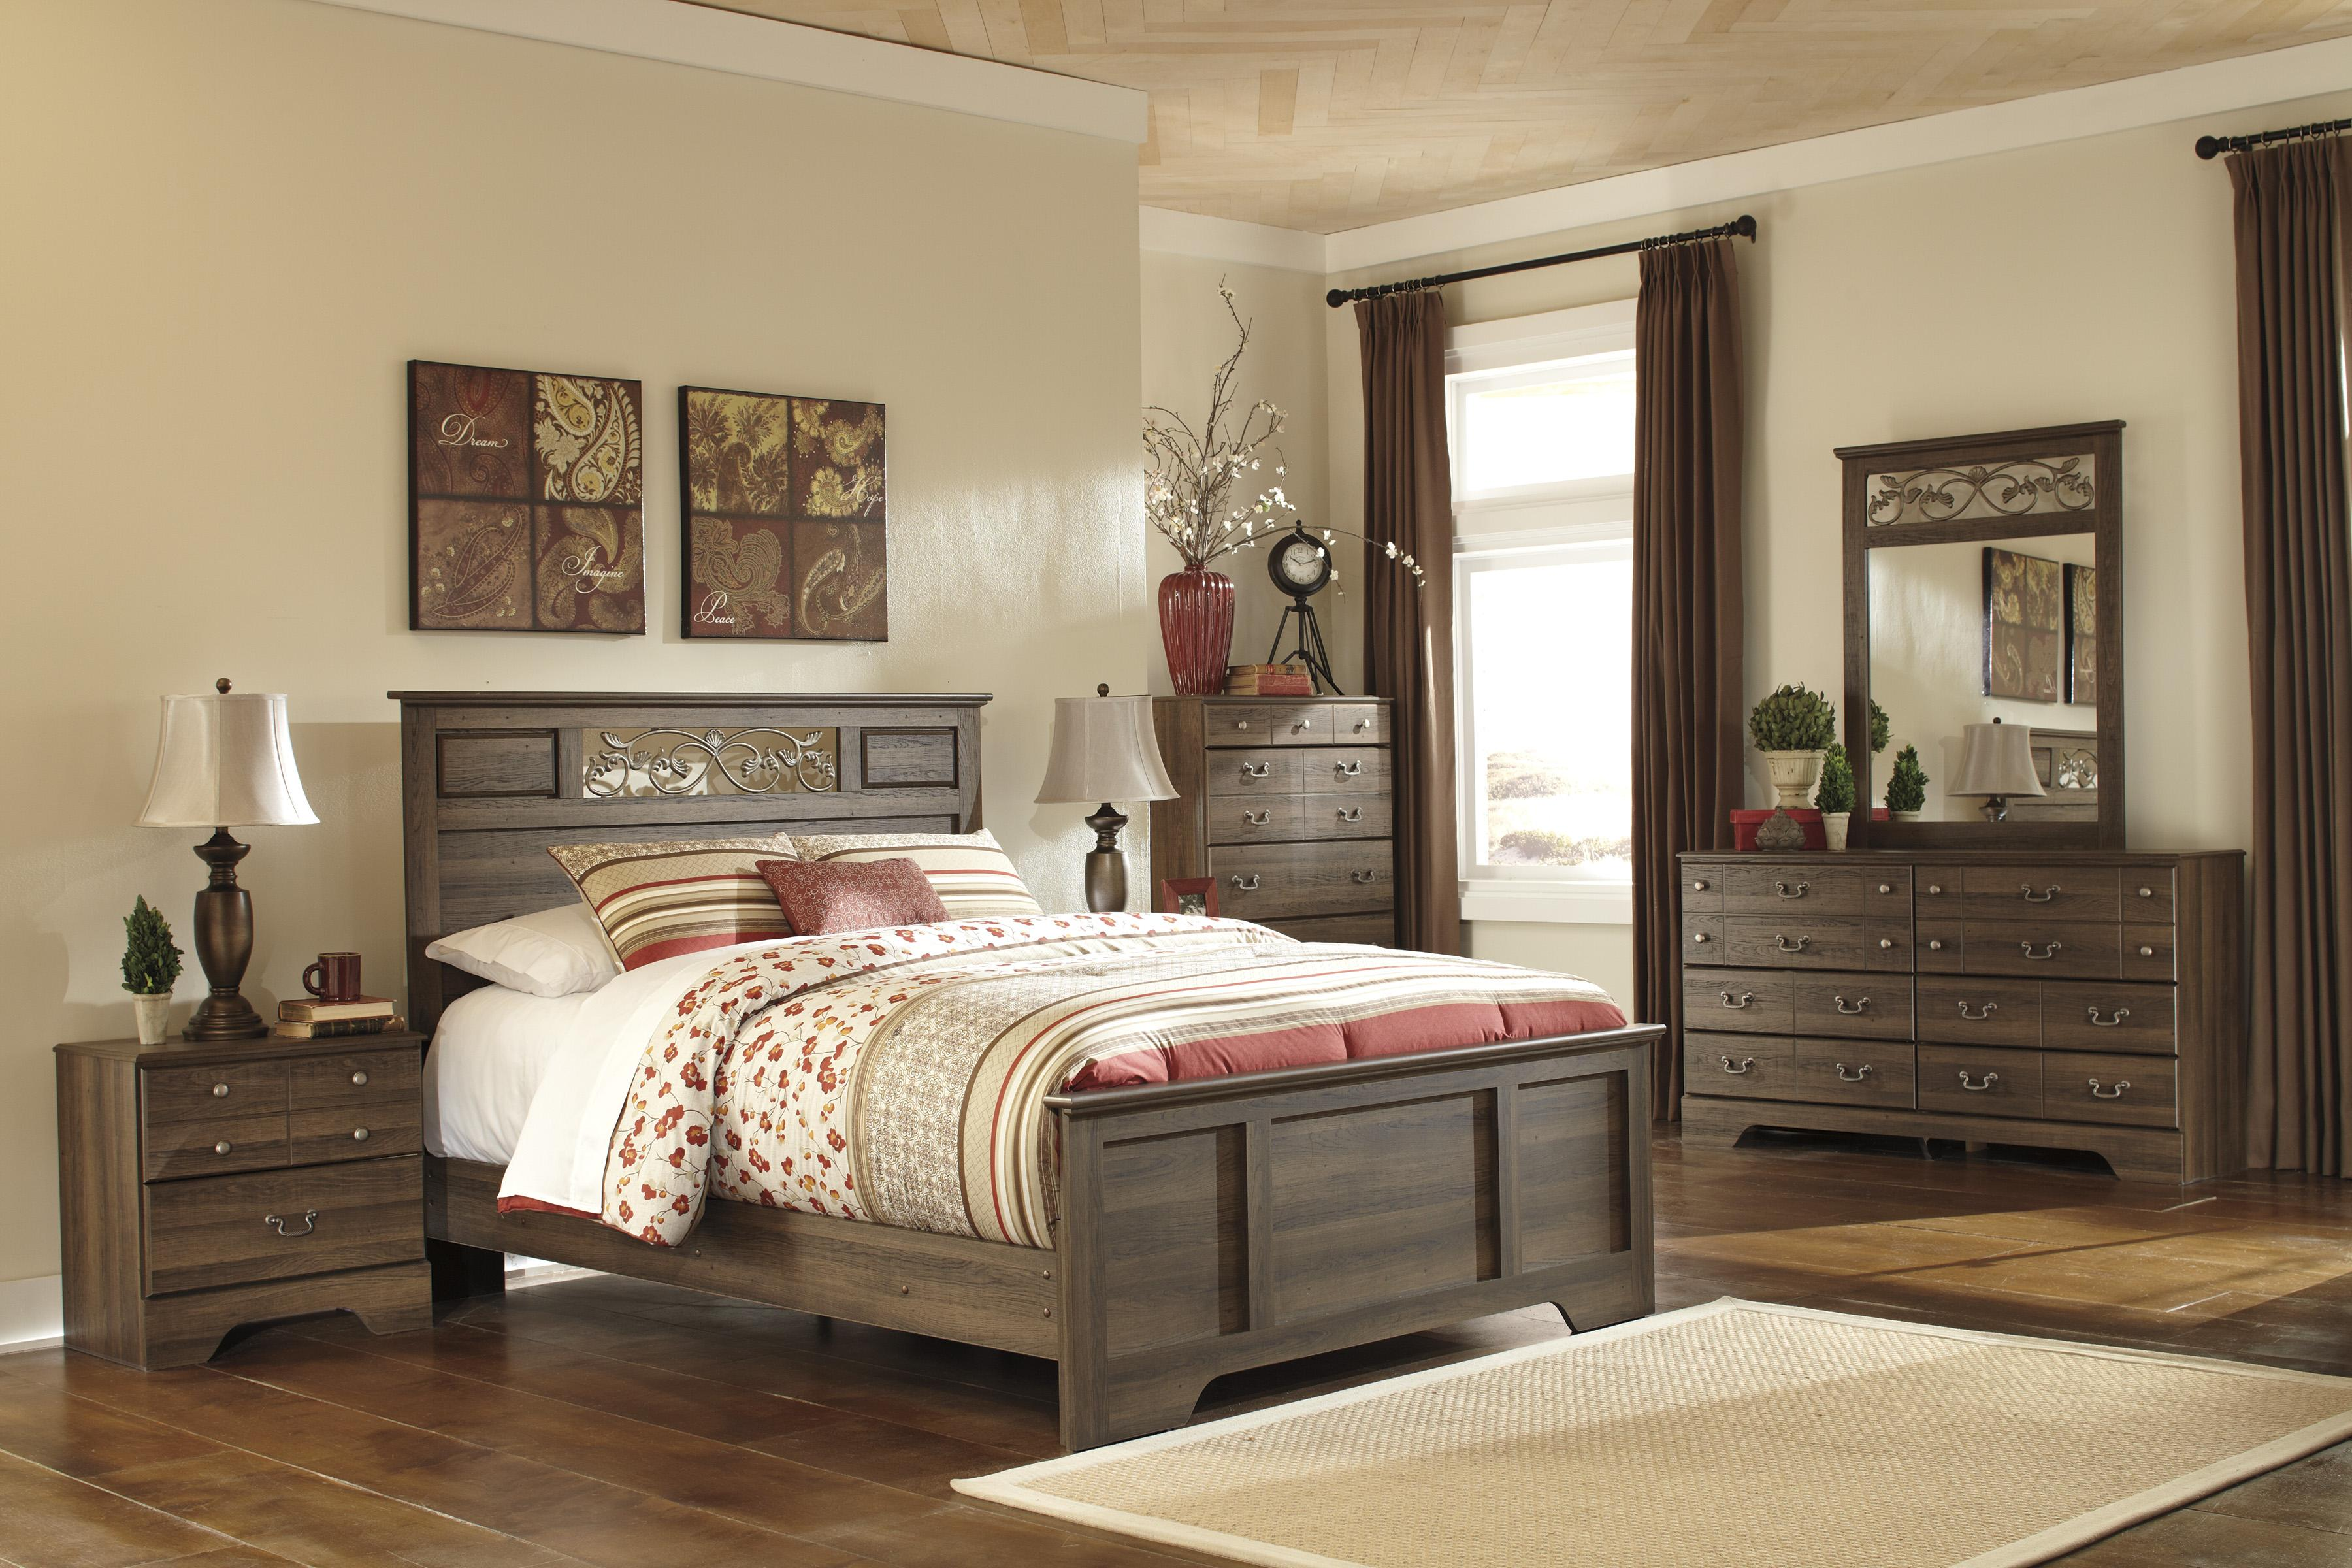 Signature Design by Ashley Allymore Queen Bedroom Group - Item Number: B216 Q Bedroom Group 4